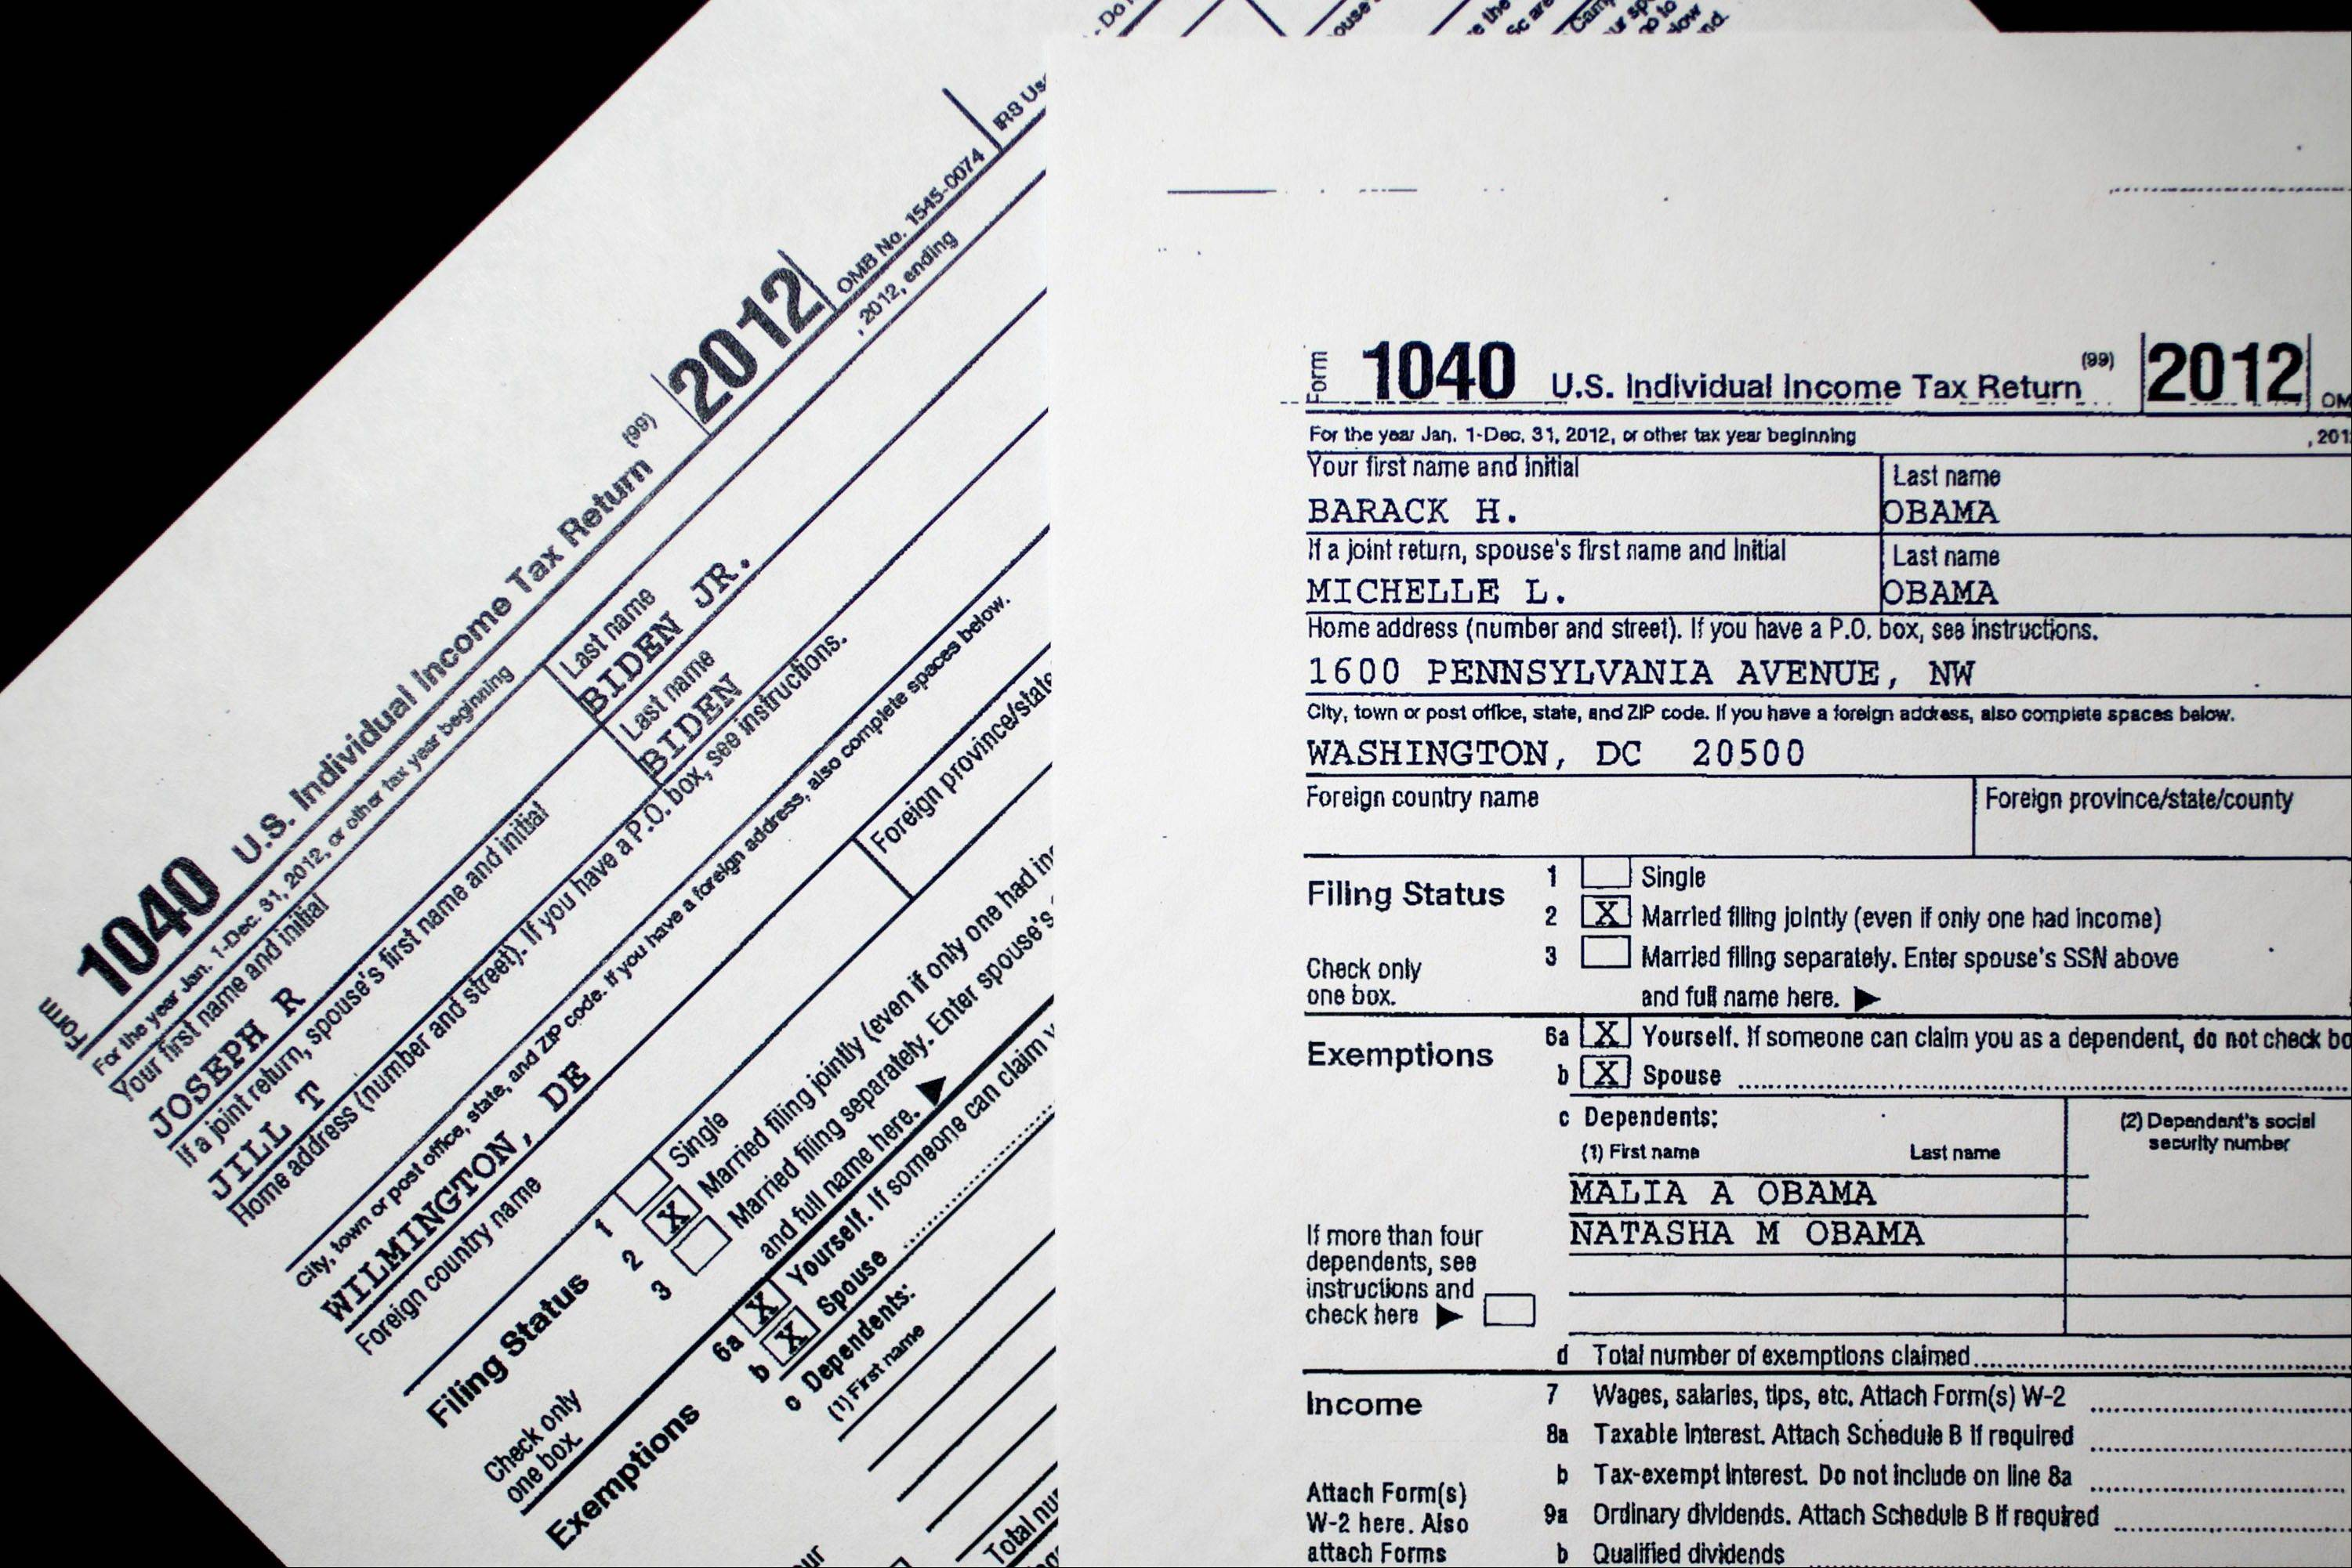 Copies of the U.S. Department of the Treasury Internal Revenue Service 1040 Individual Income Tax form for the 2012 tax year belonging to U.S. President Barack Obama and first lady Michelle Obama and U.S. Vice President Joseph Biden and his wife, Jill Biden, are arranged for a photograph Friday in Washington, D.C.